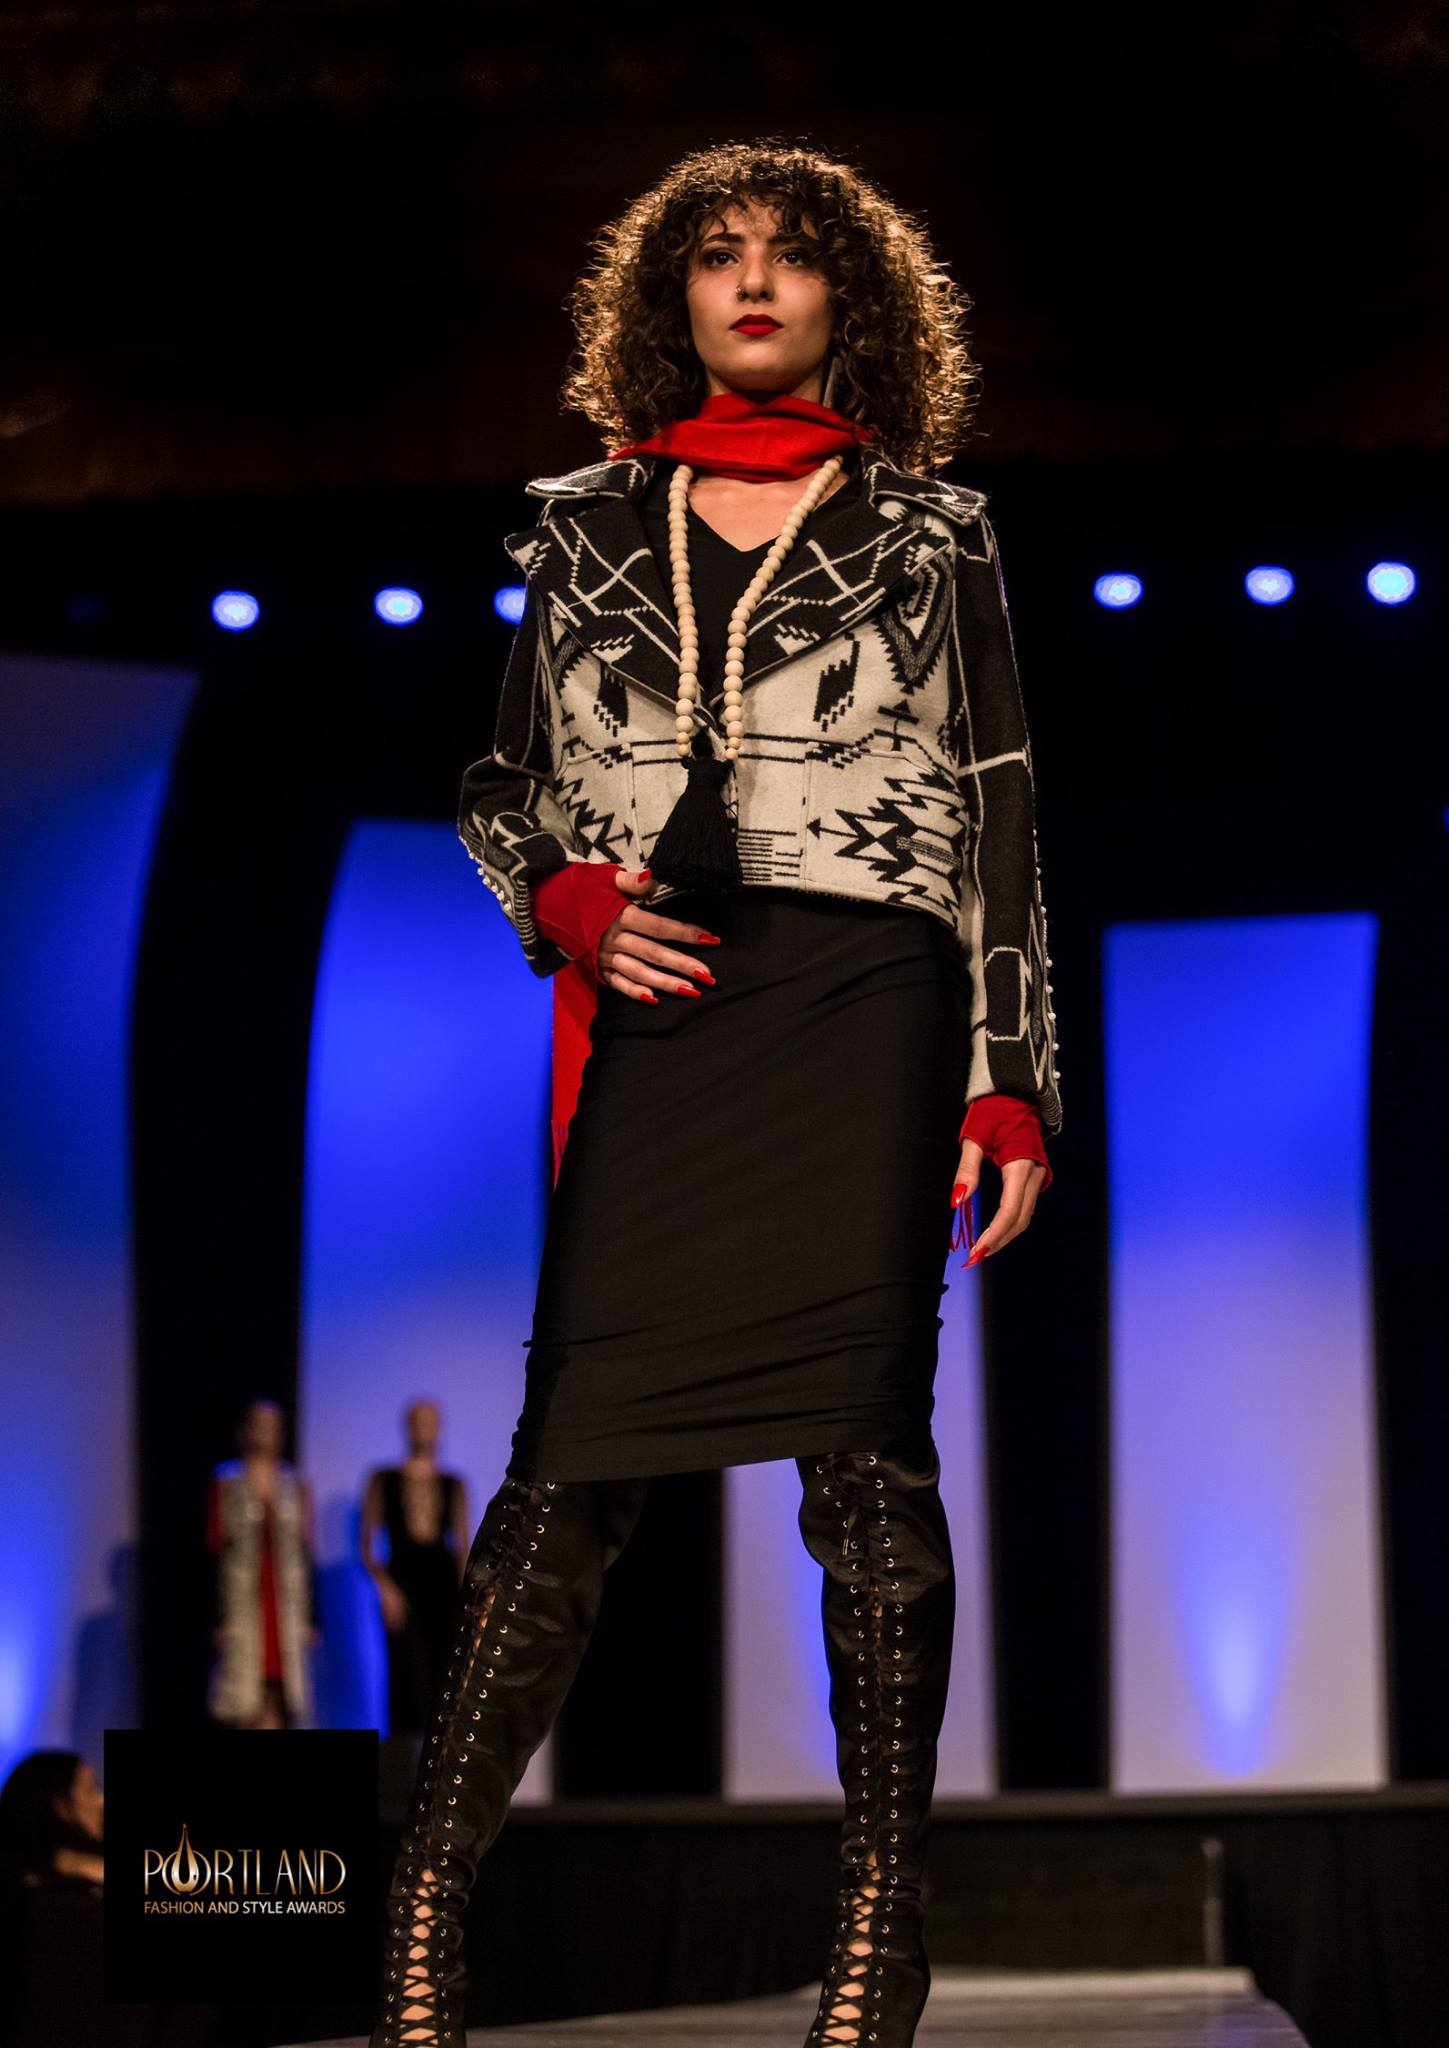 Tom_Lupton_Photography_Fashion_Runway_7.jpg